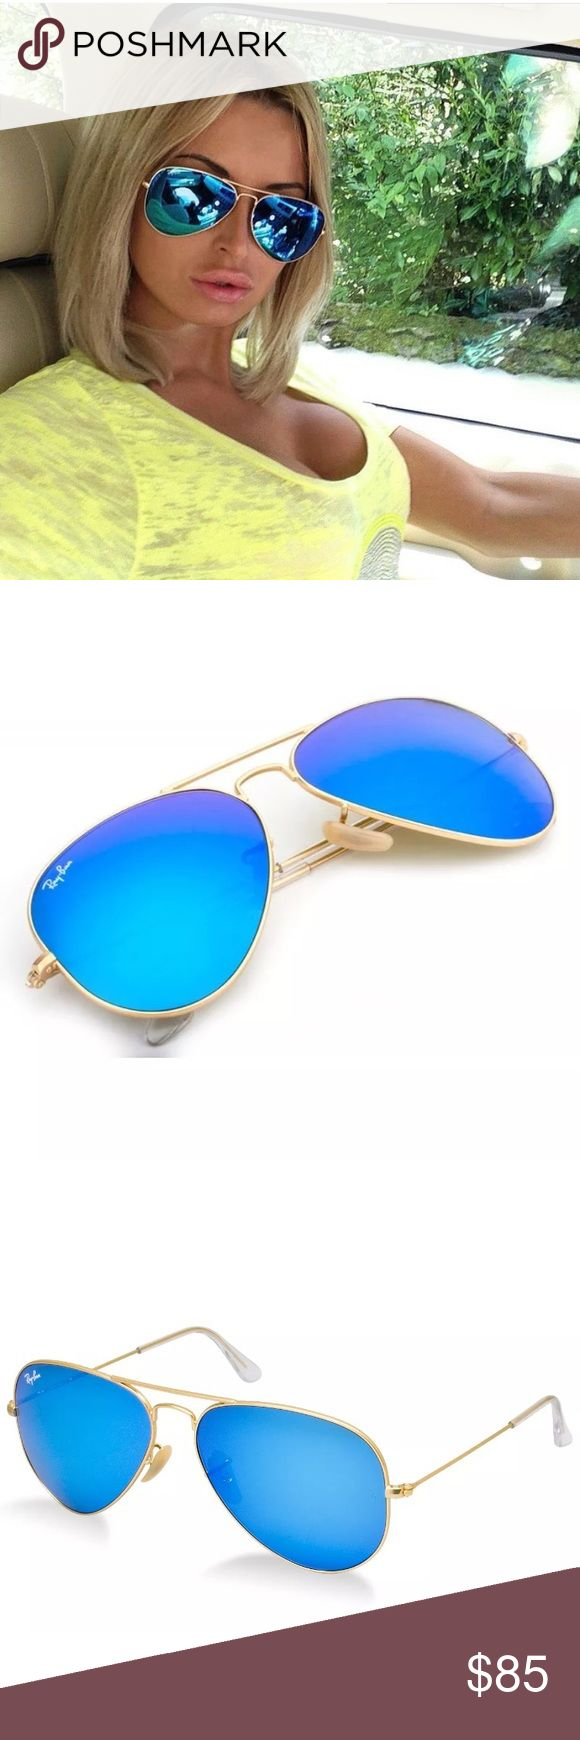 100%AUTHENTIC ray-ban aviator style blue lens Model code: Rb3025 112/17 58-14  Frame material: Metal Frame color: Matte Gold Lenses: Blue Mirror Shape: Aviator Size lens-bridge: 58-14 Temple Length: 135mm Technology: Mirror MADE IN ITALY FULL PACKAGING FROM MANUFACTURER. Ray-Ban Accessories Sunglasses